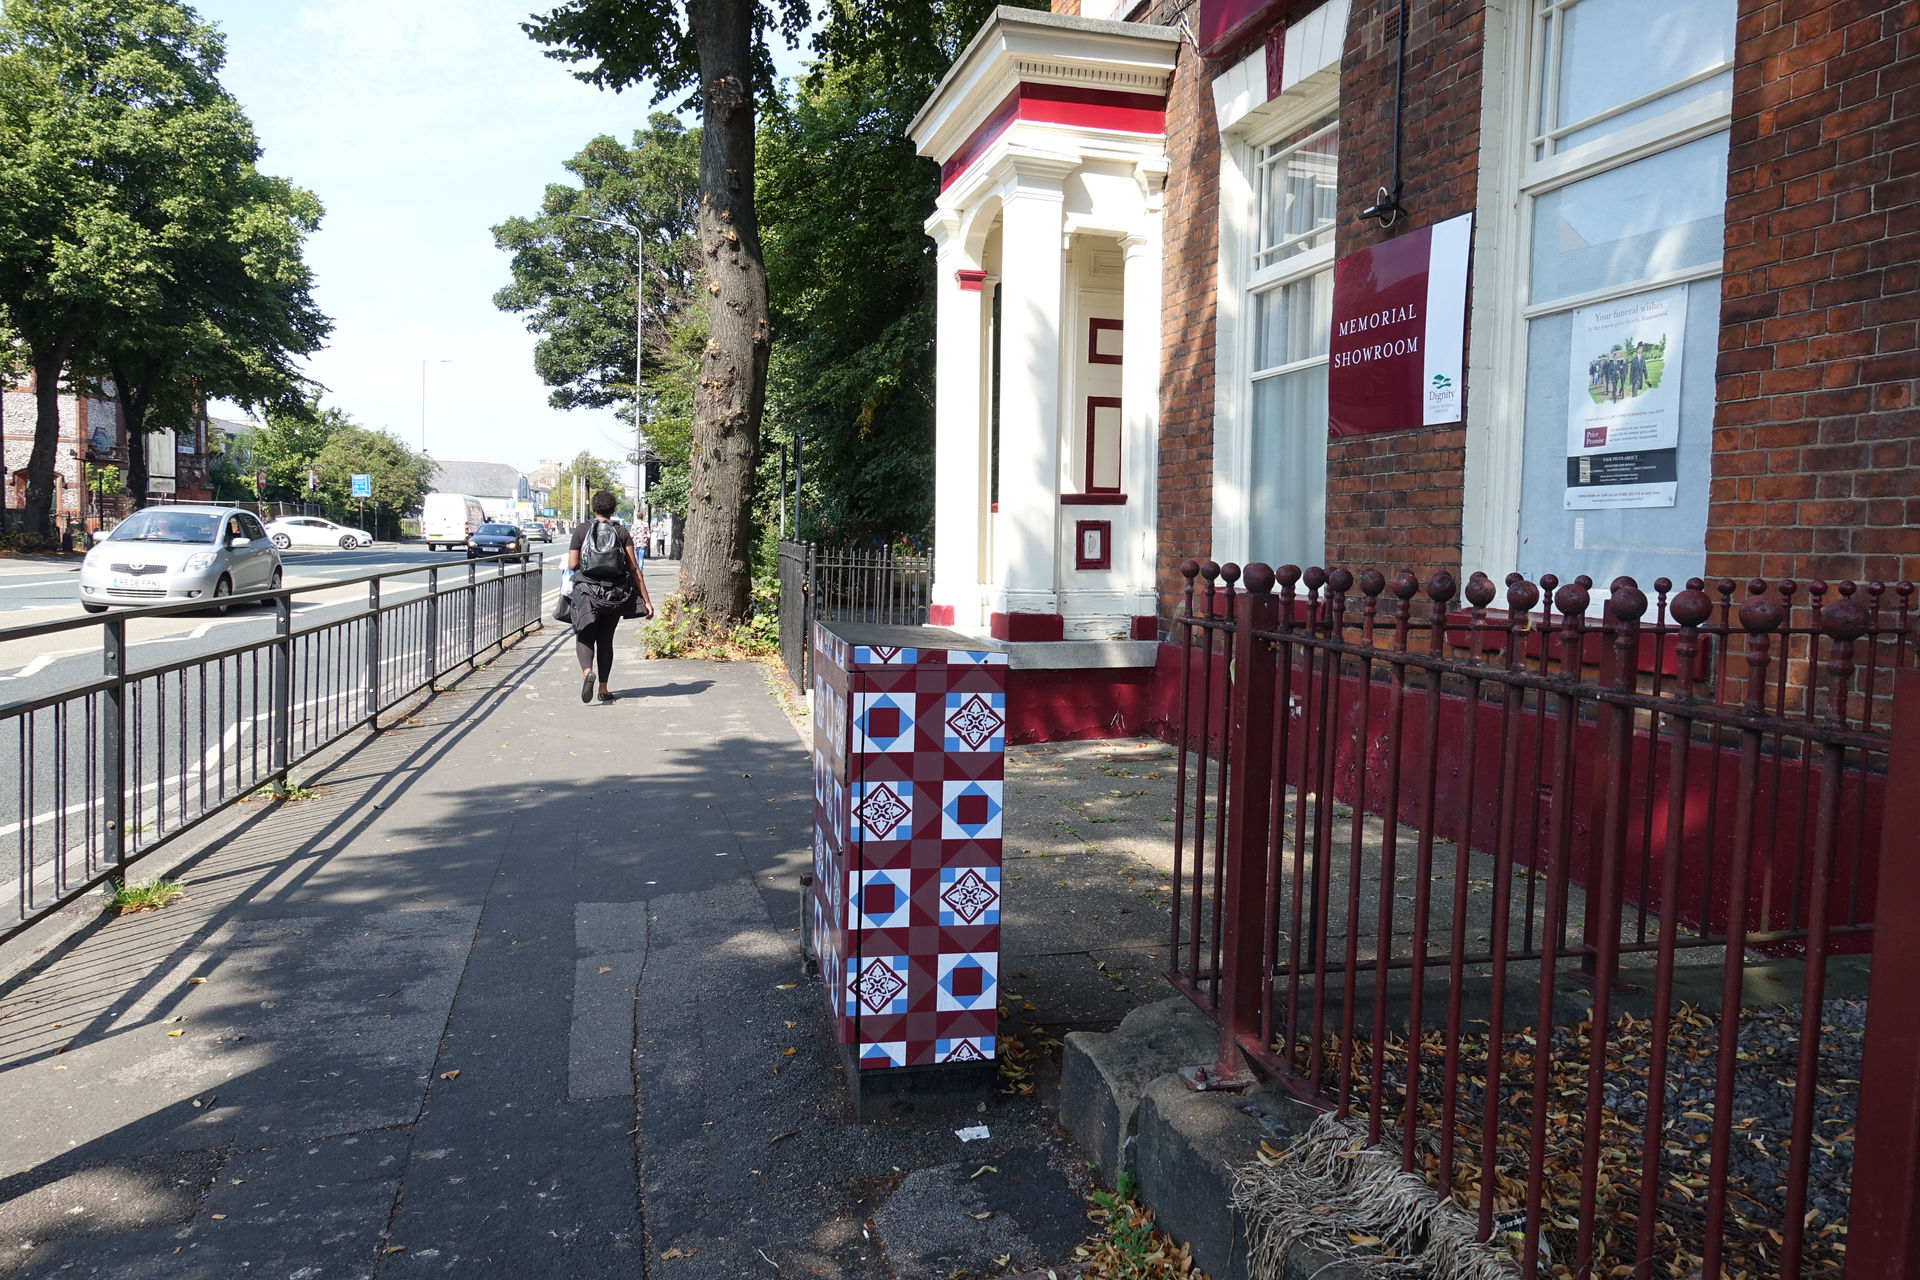 Tile signal control box art on Beverley Road, Hull by Lydia Caprani. Commissioned by Hull City Council.